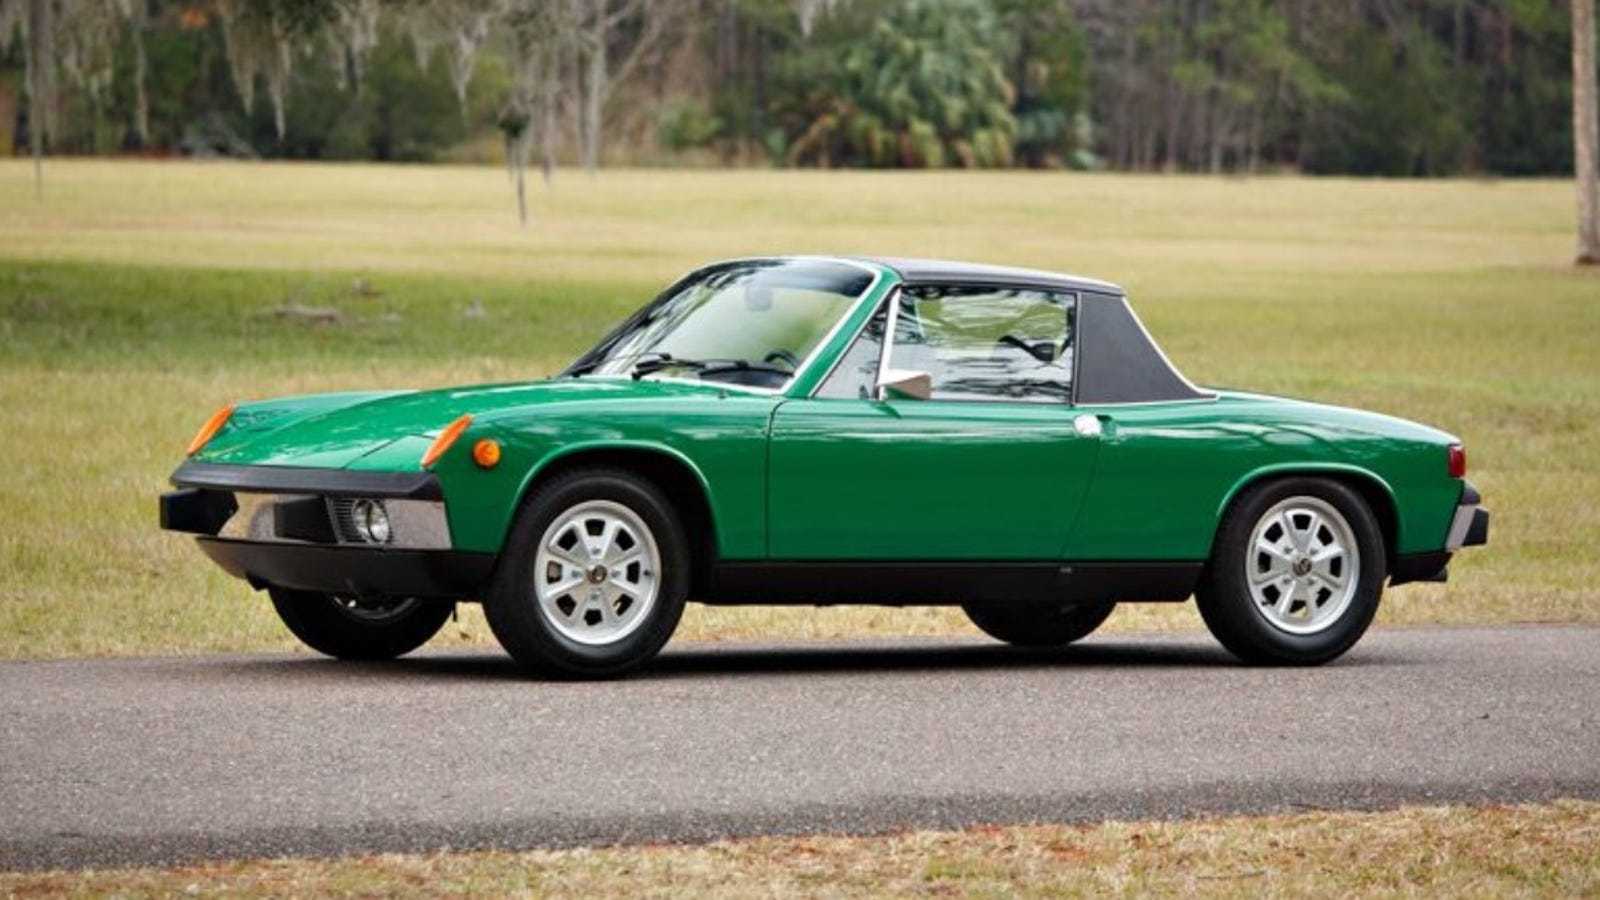 This Four-Cylinder Porsche 914 Just Sold For $93,000